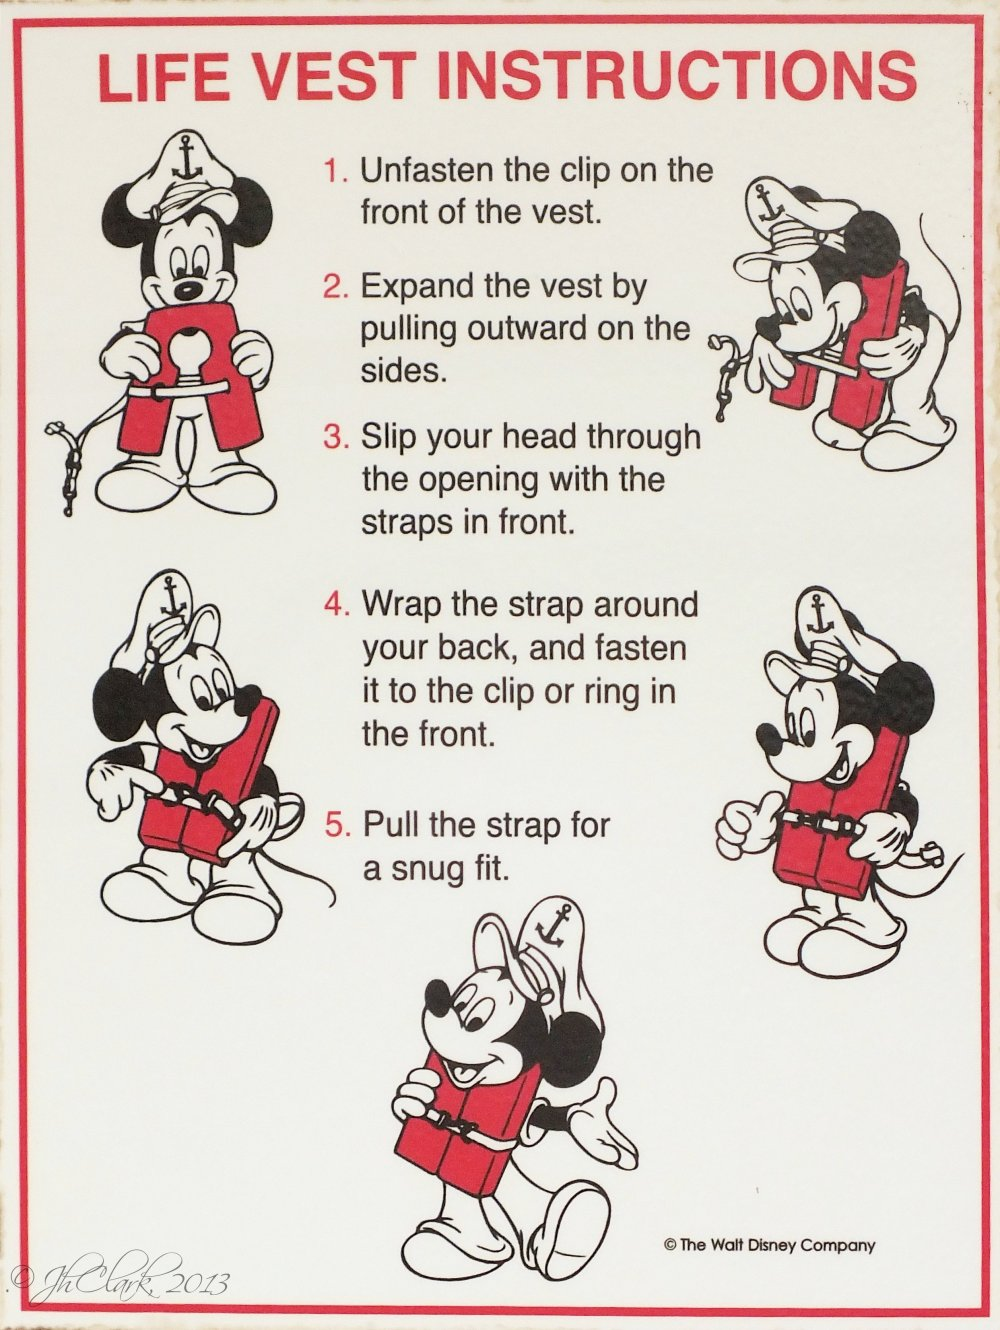 Not so silly Mickey...